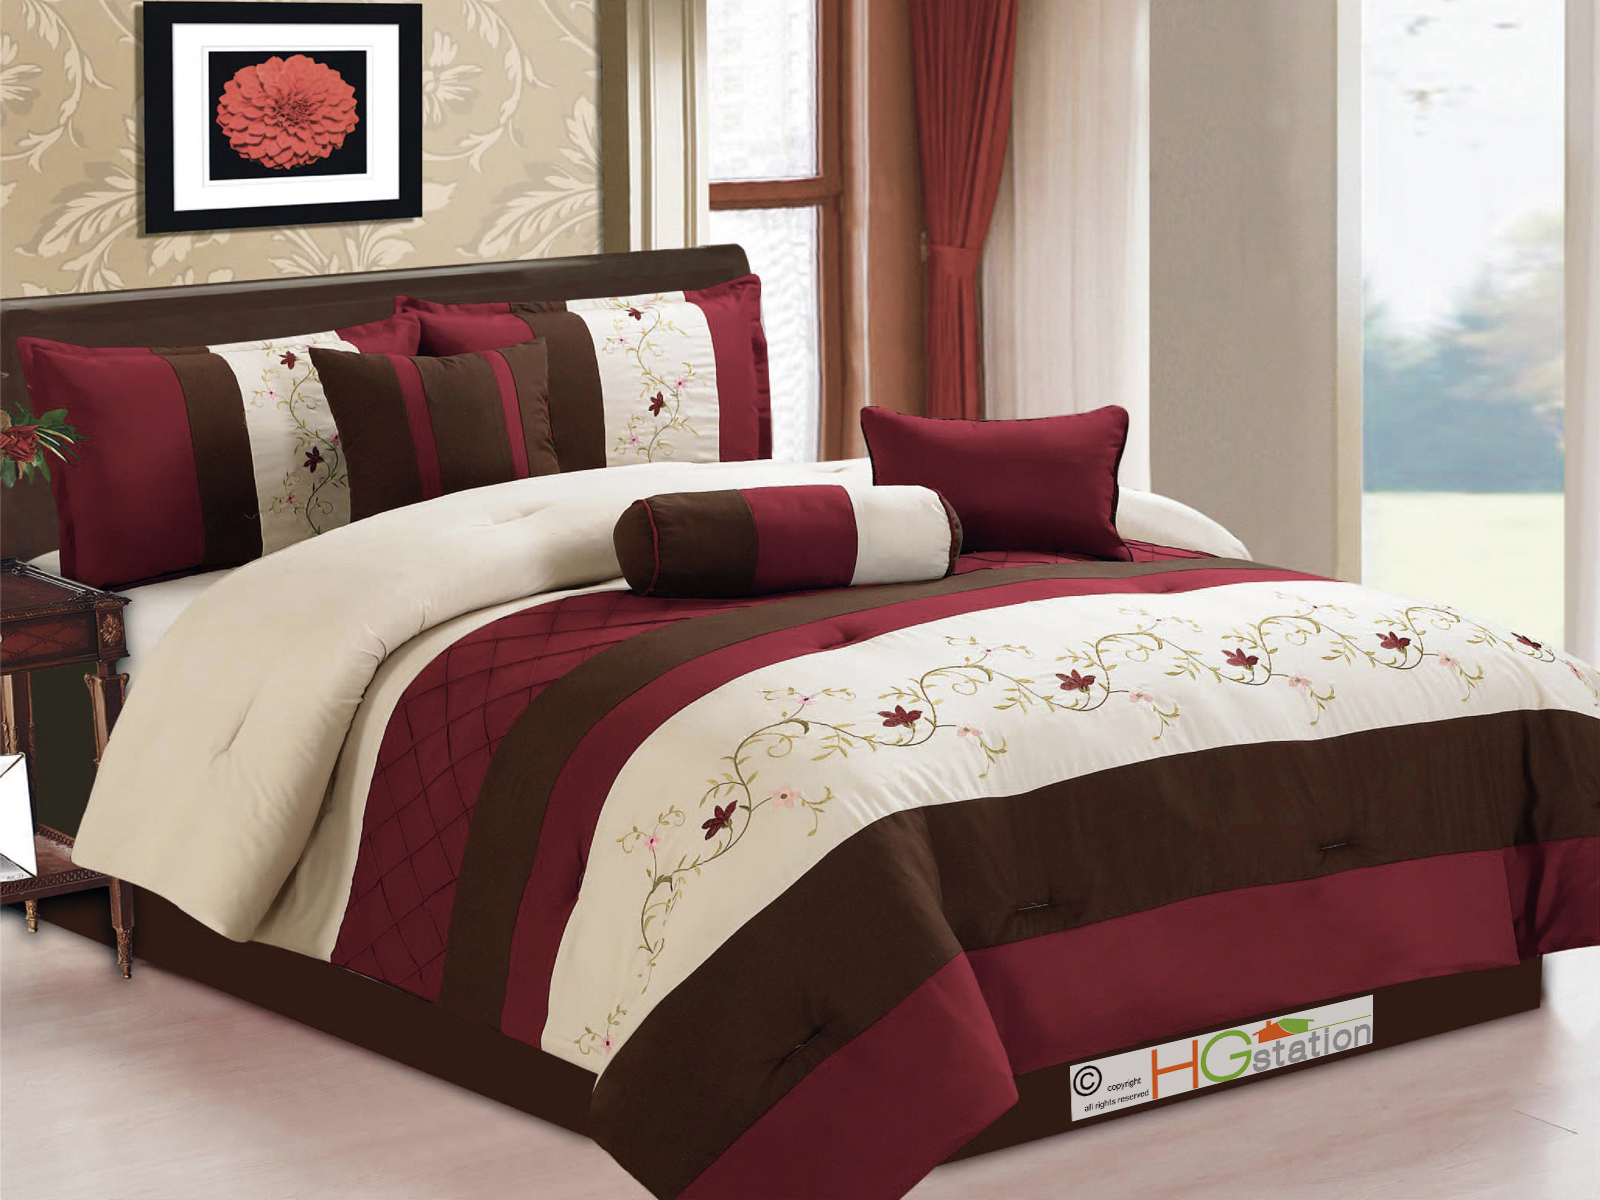 7-Pc Floral Scroll Embroidery Pleated Comforter Set